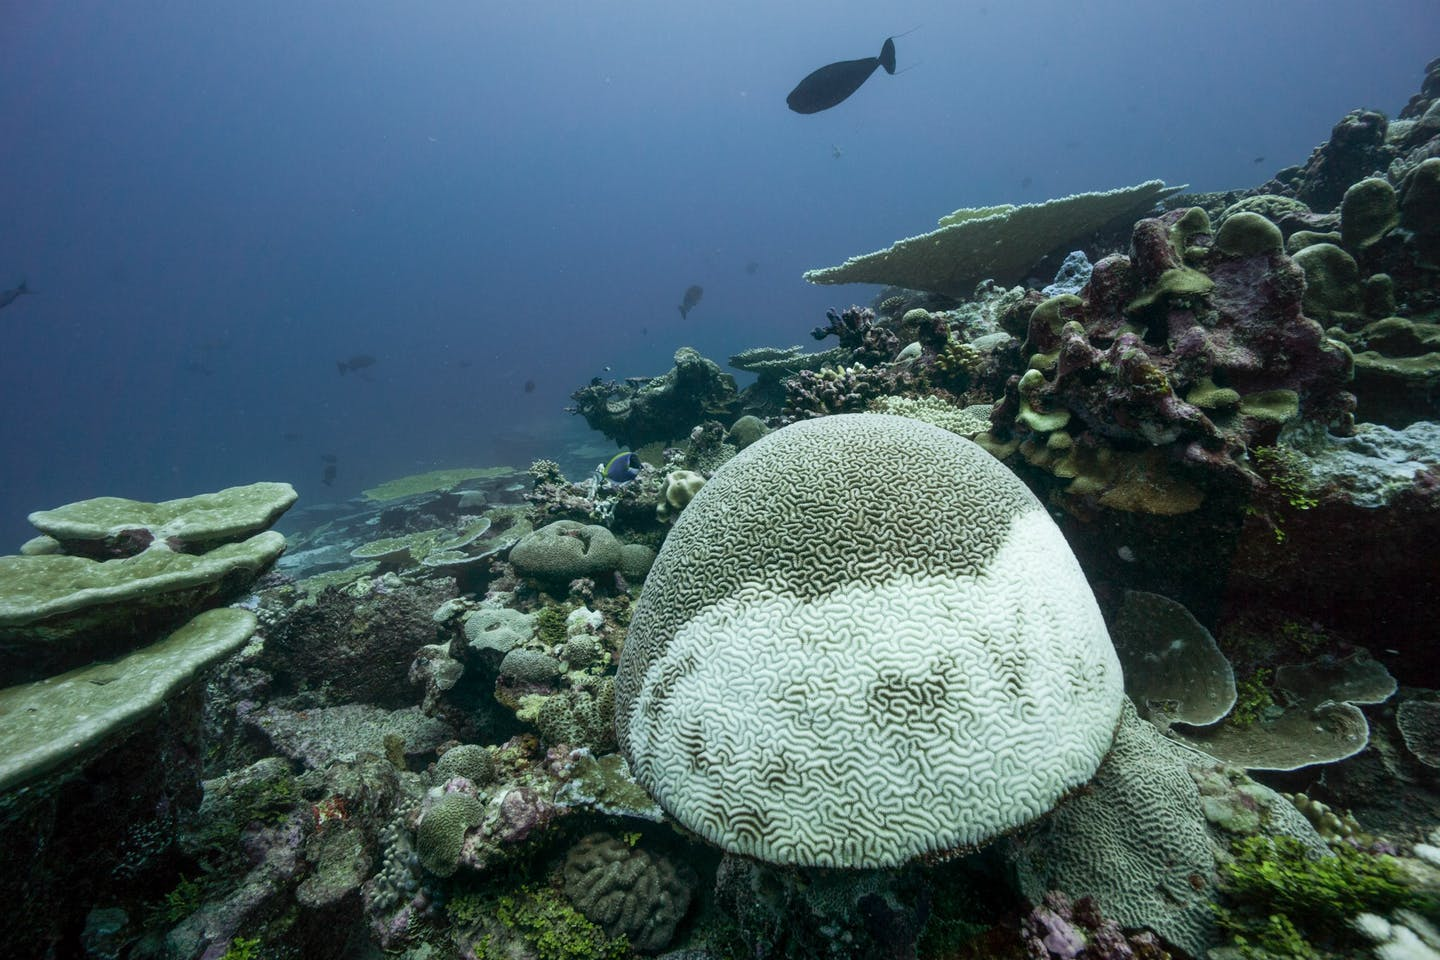 A large mushroom-shaped coral structure, half of it turned white from bleaching